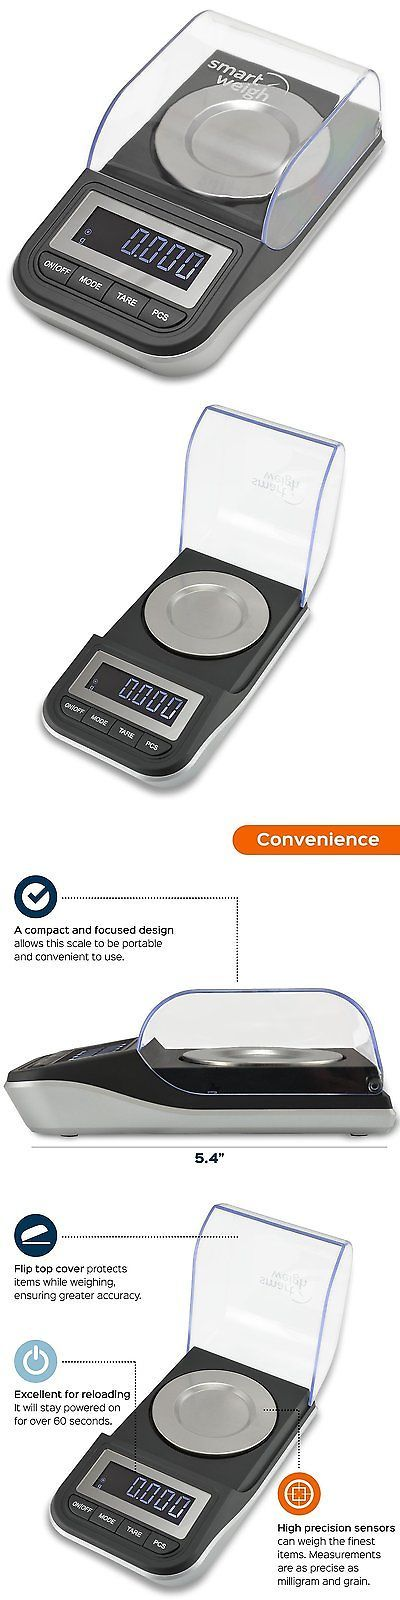 Scales 34088: Portable Precision Digital Milligram Scale Weighing Jewelry Bakery 50 X 0.001G -> BUY IT NOW ONLY: $41.51 on eBay!